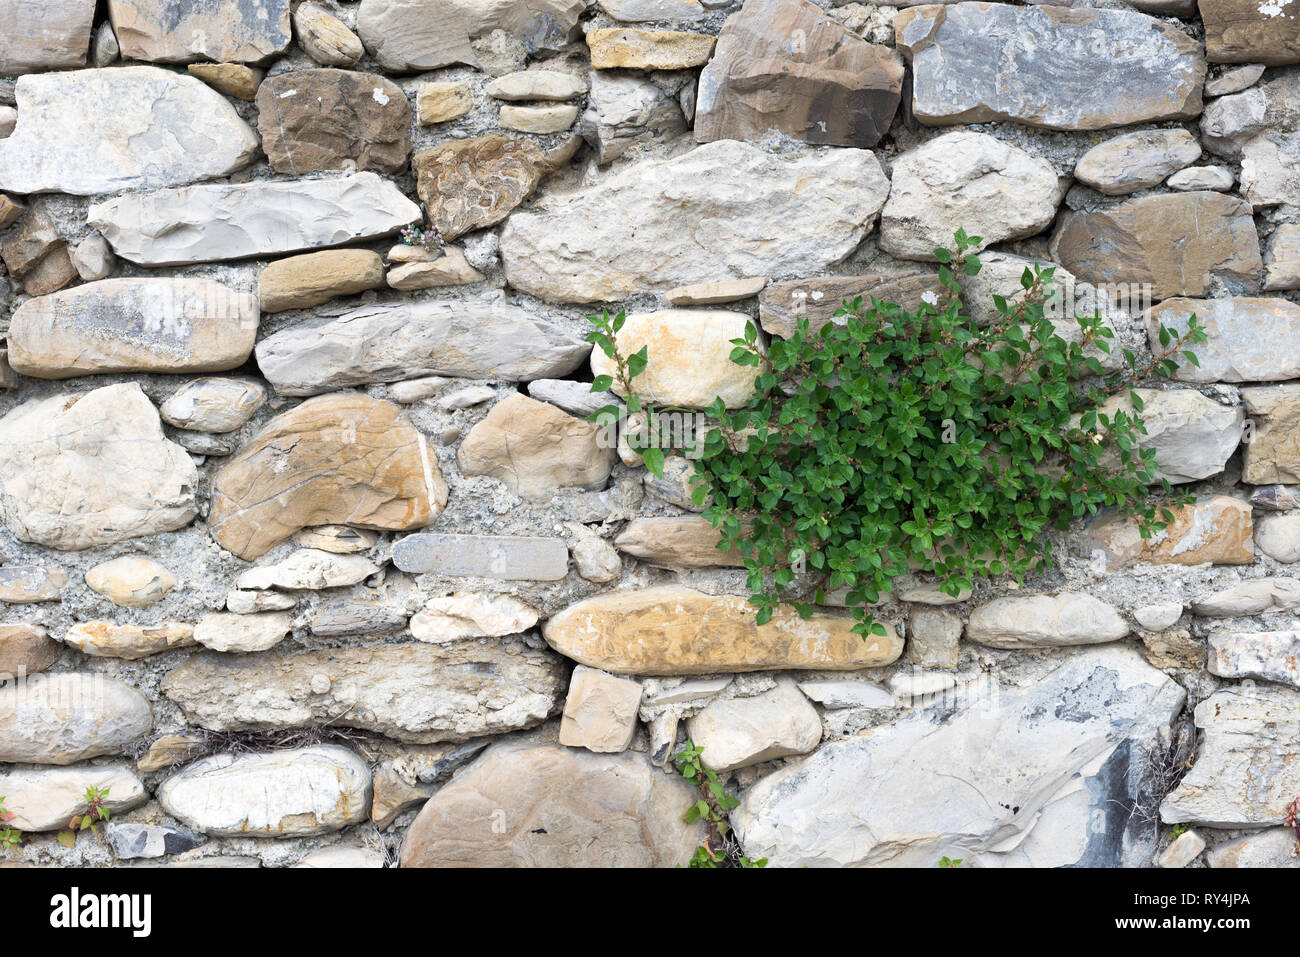 Particular view of a plant born in ancient stone wall, in the village of Borgo Cervo in Liguria Italy. Useful as a forceful background of nature - Stock Image